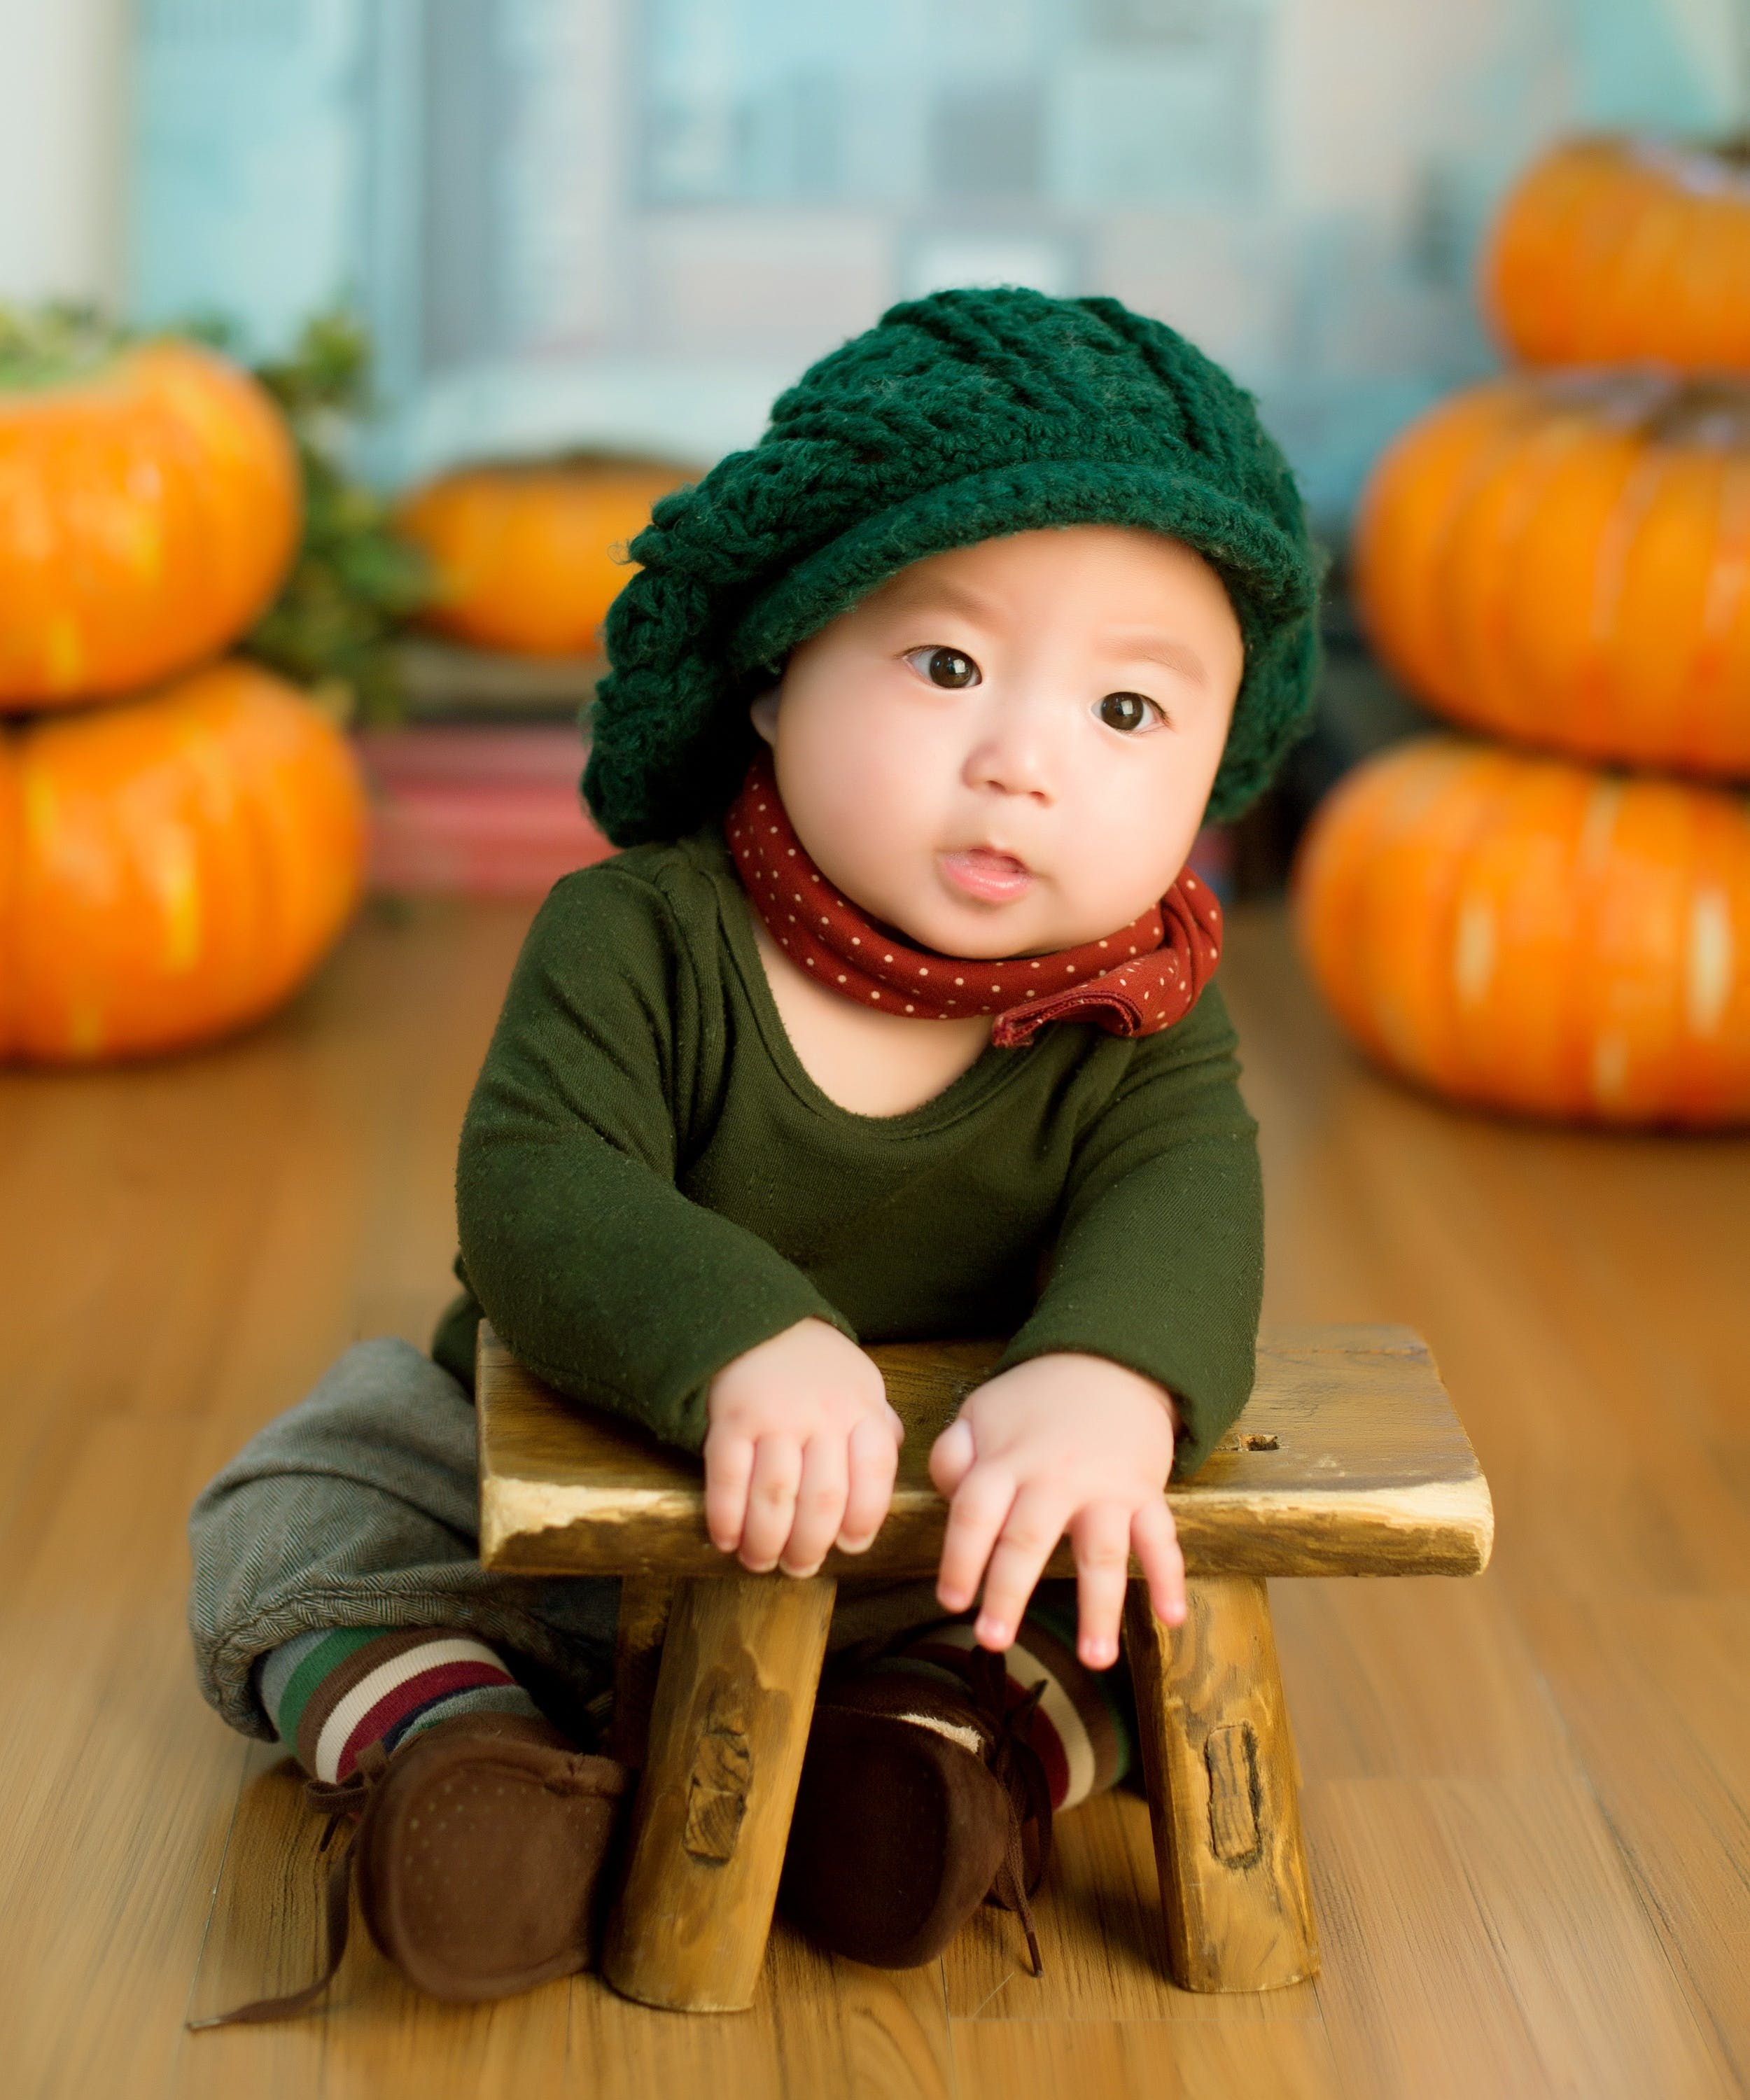 Free stock photo of adorable, Asian, baby, baby model